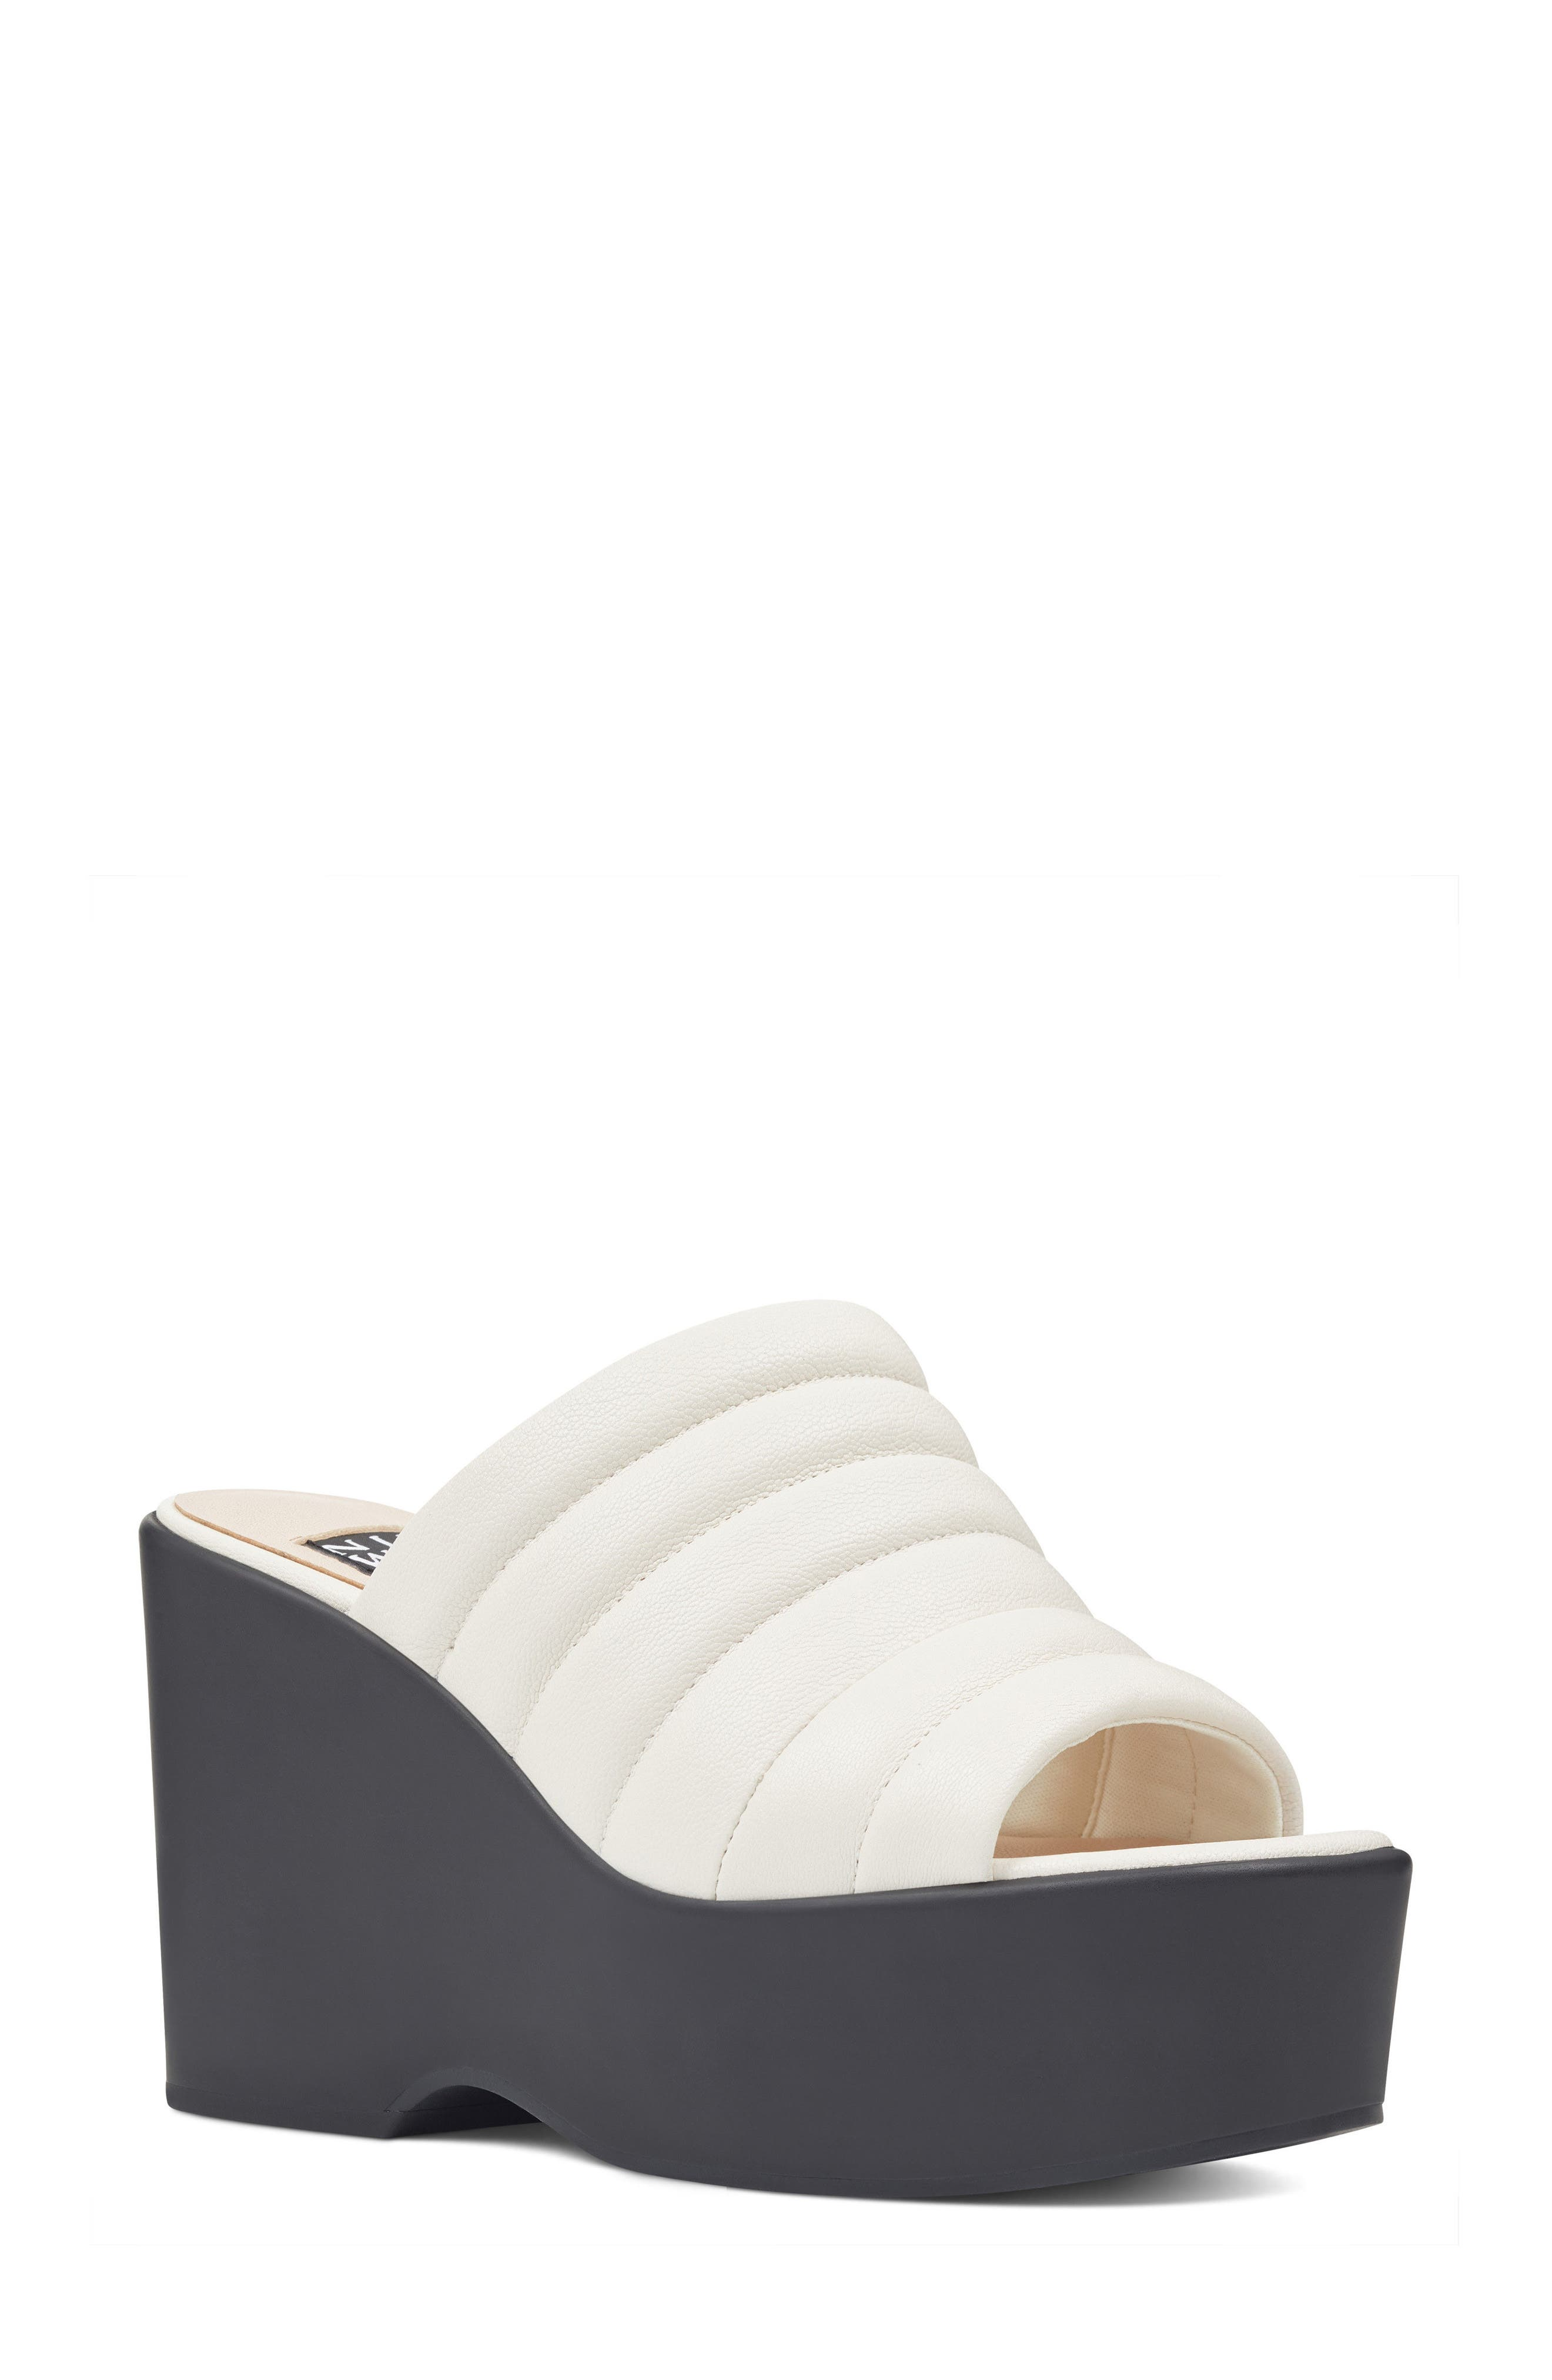 Millie - 40th Anniversary Capsule Collection Platform Wedge,                             Main thumbnail 1, color,                             Off White Leather